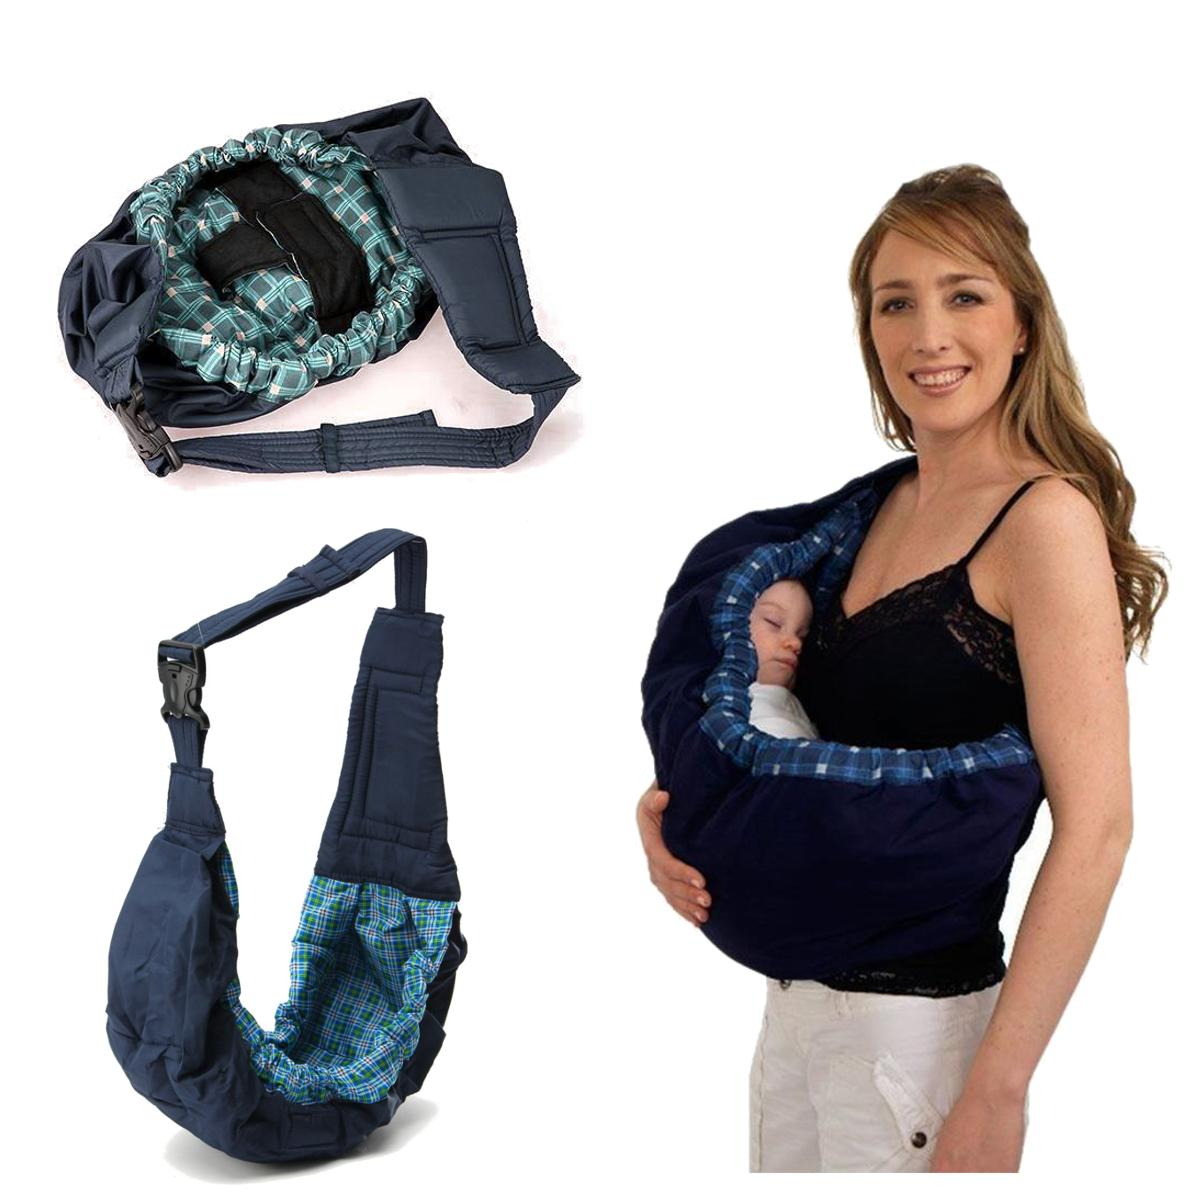 6b209de1a91  Free Shipping + Flash Deal Newborn Infant Baby Adjustable Carrier Sling  Wrap Rider Backpack